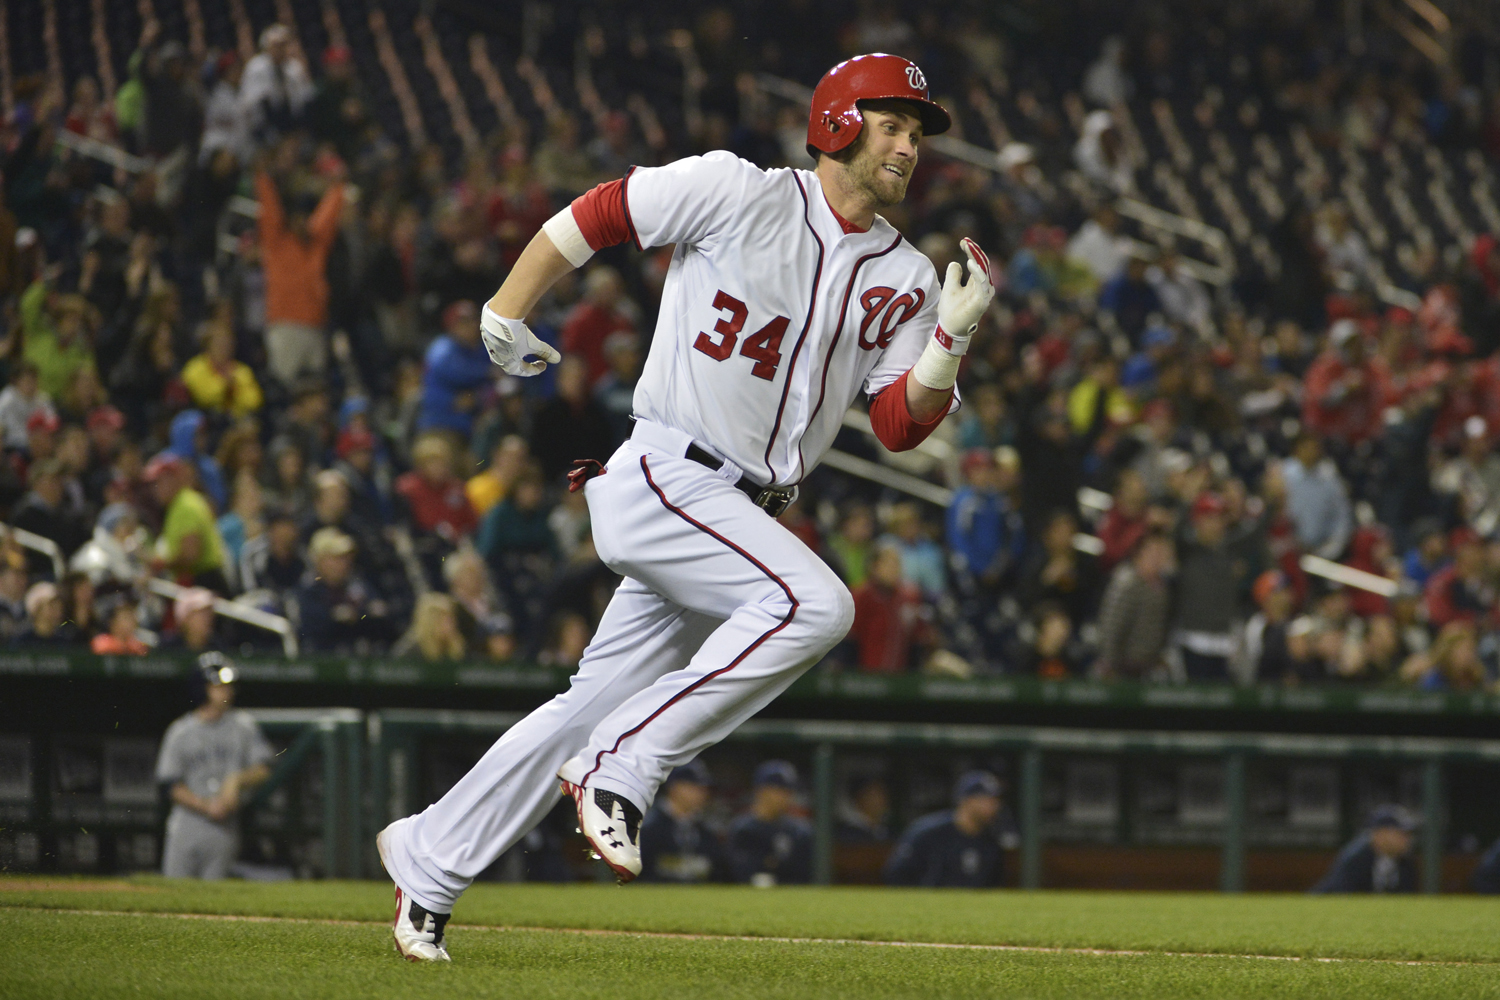 Washington Nationals left fielder Bryce Harper runs down first base after hitting a three-run triple in the third inning against the San Diego Padres at Nationals Park